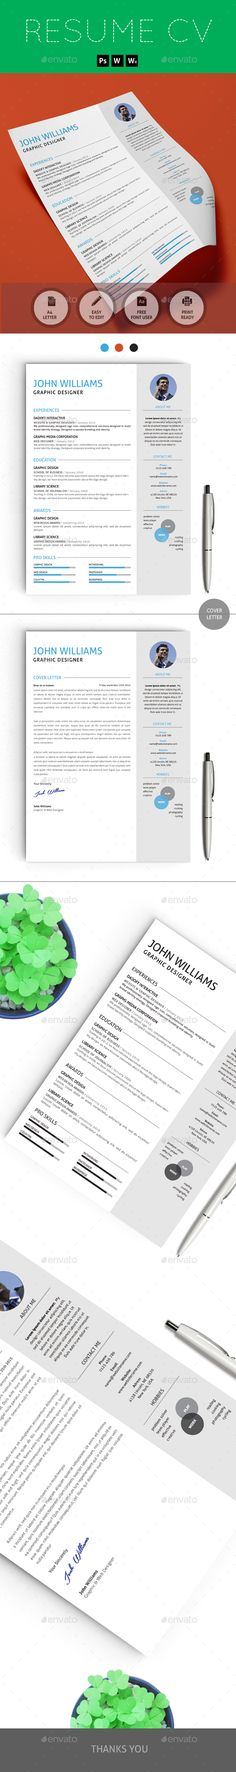 CV Resume \ Cover Letter Resume cover letters, Resume cv and - is a cv a resume